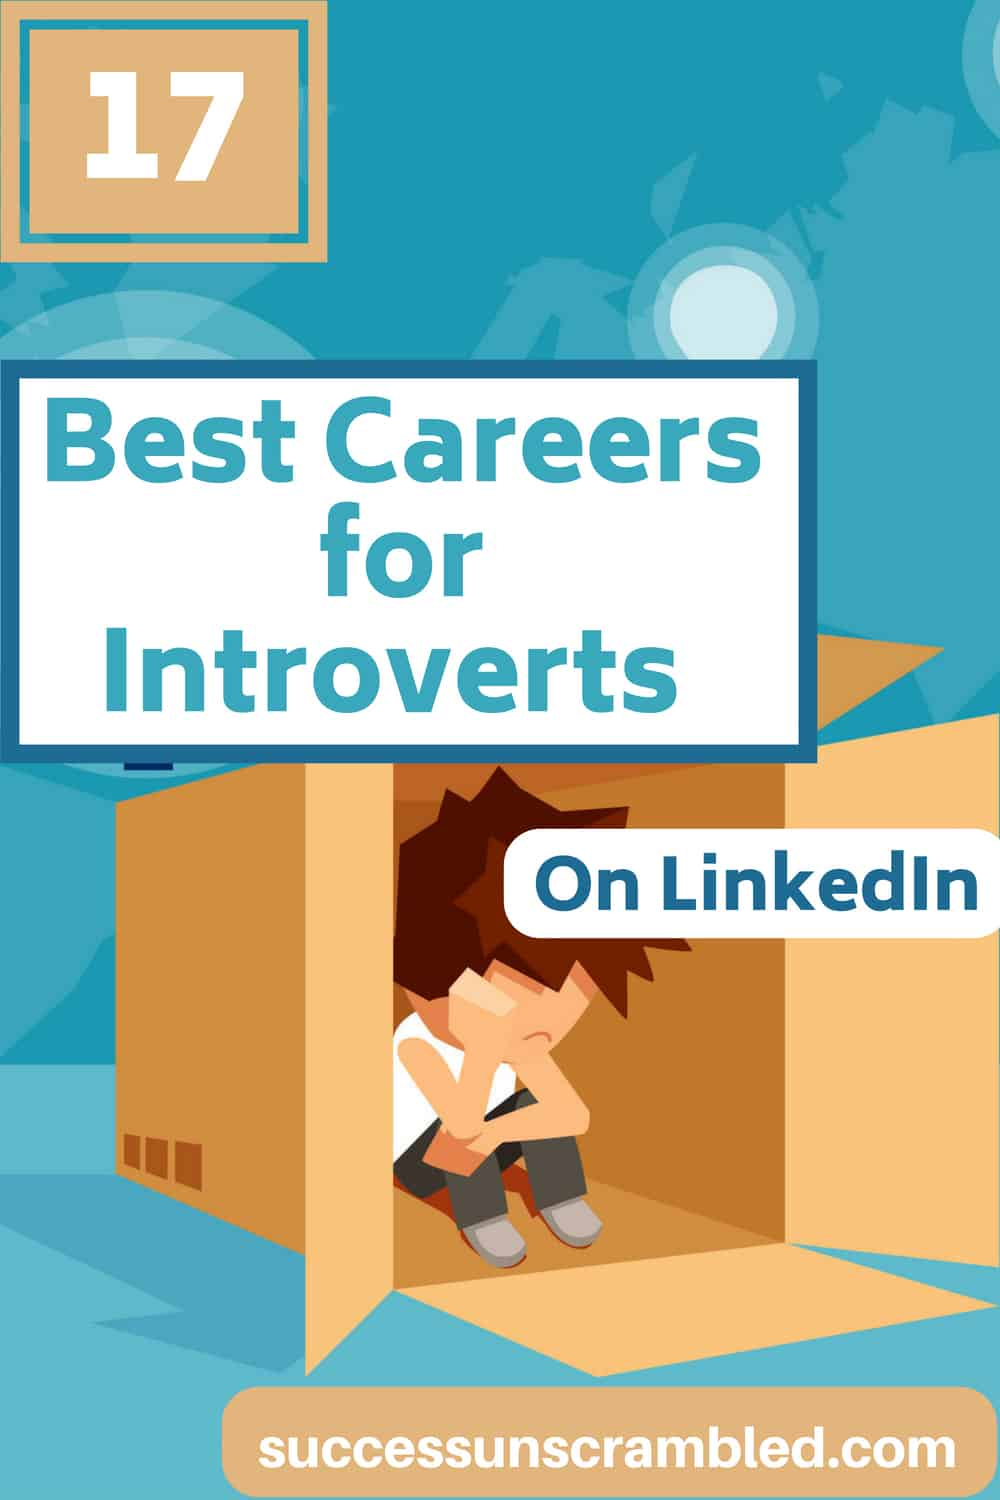 17 Best Careers for Introverts on LinkedIn